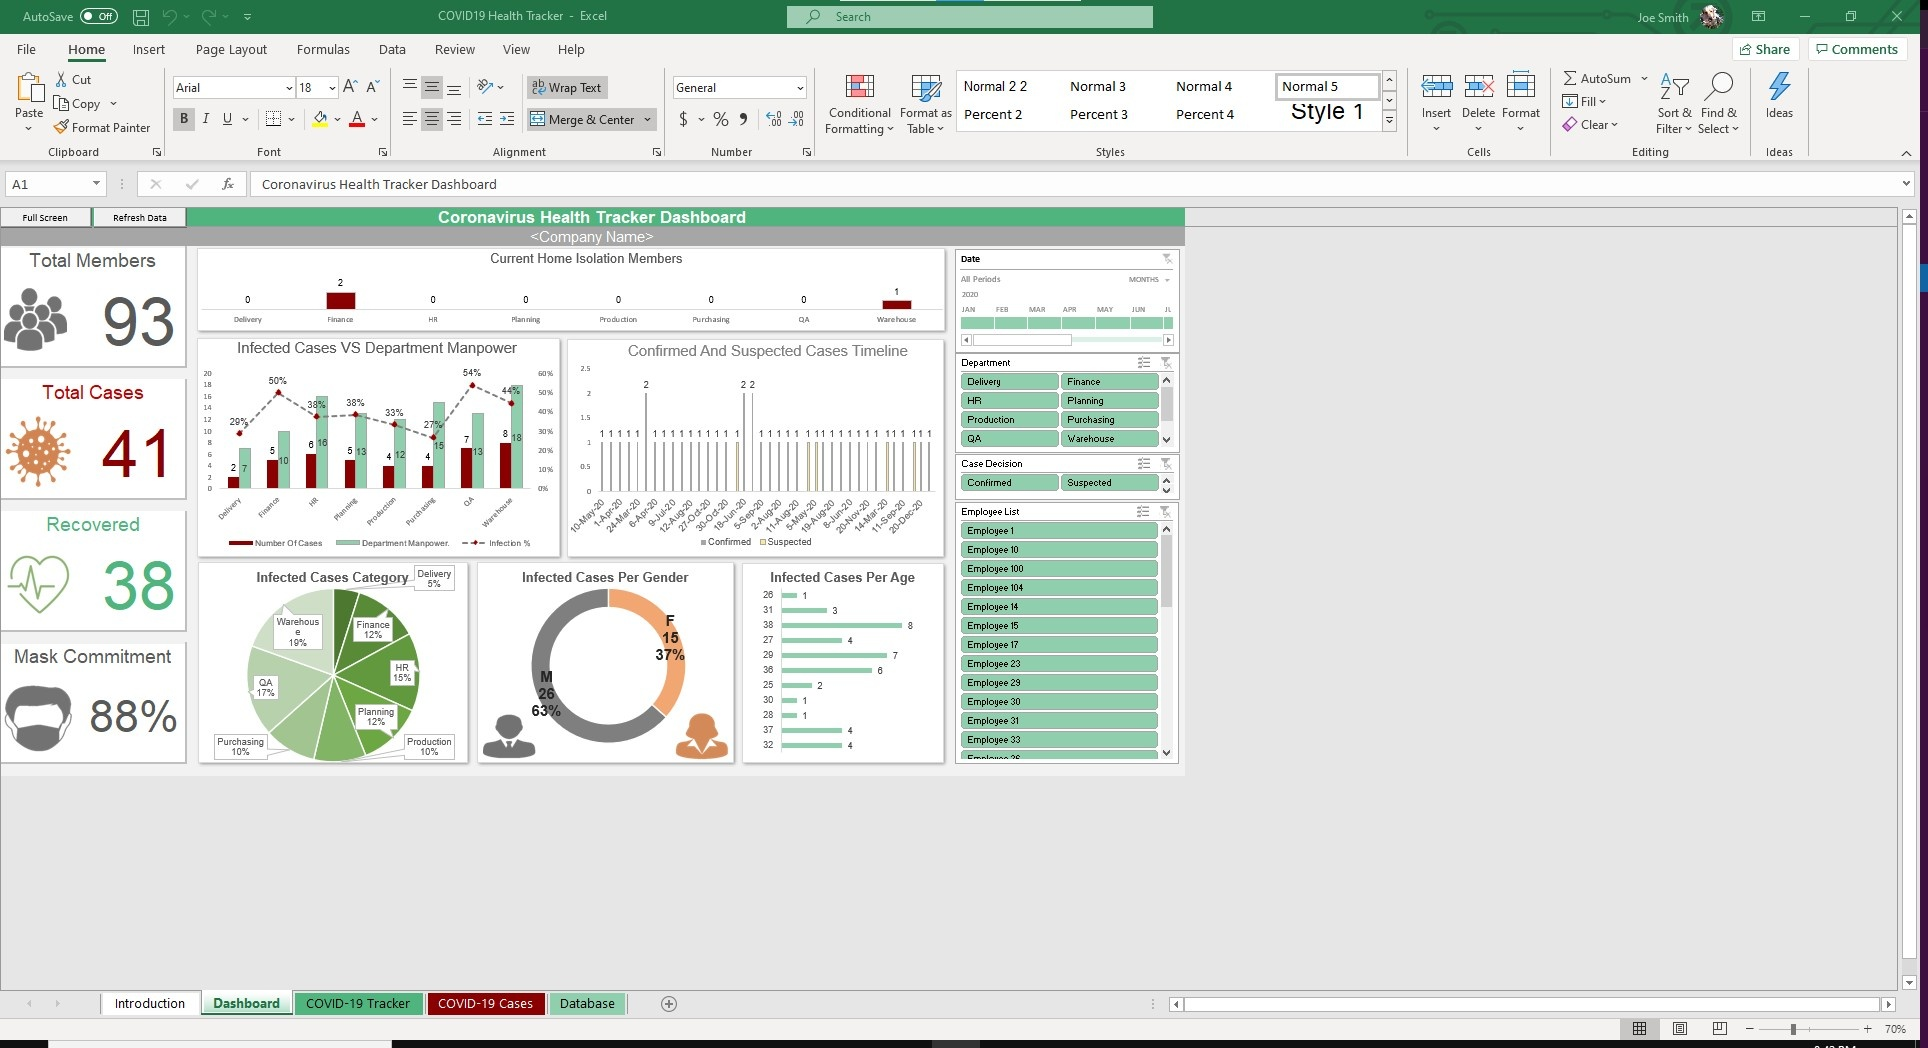 The Dashboard of our COVID-19 Employee Health Tracker Excel Template allows you to see the spread and health of your employees at a high-level.